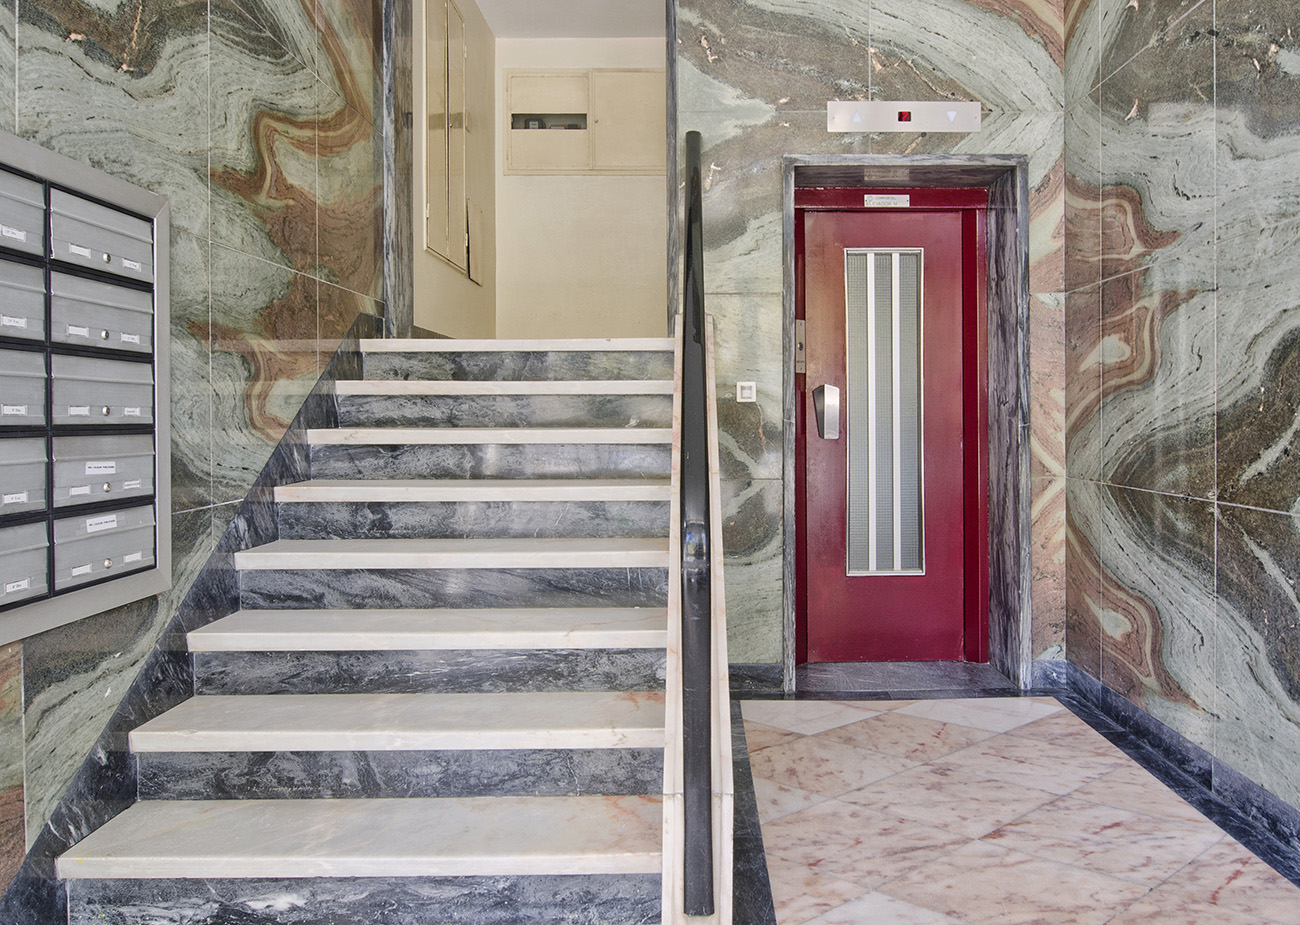 Swirling marble tiles clad the walls of this multi-unit apartment lobby in Lisbon